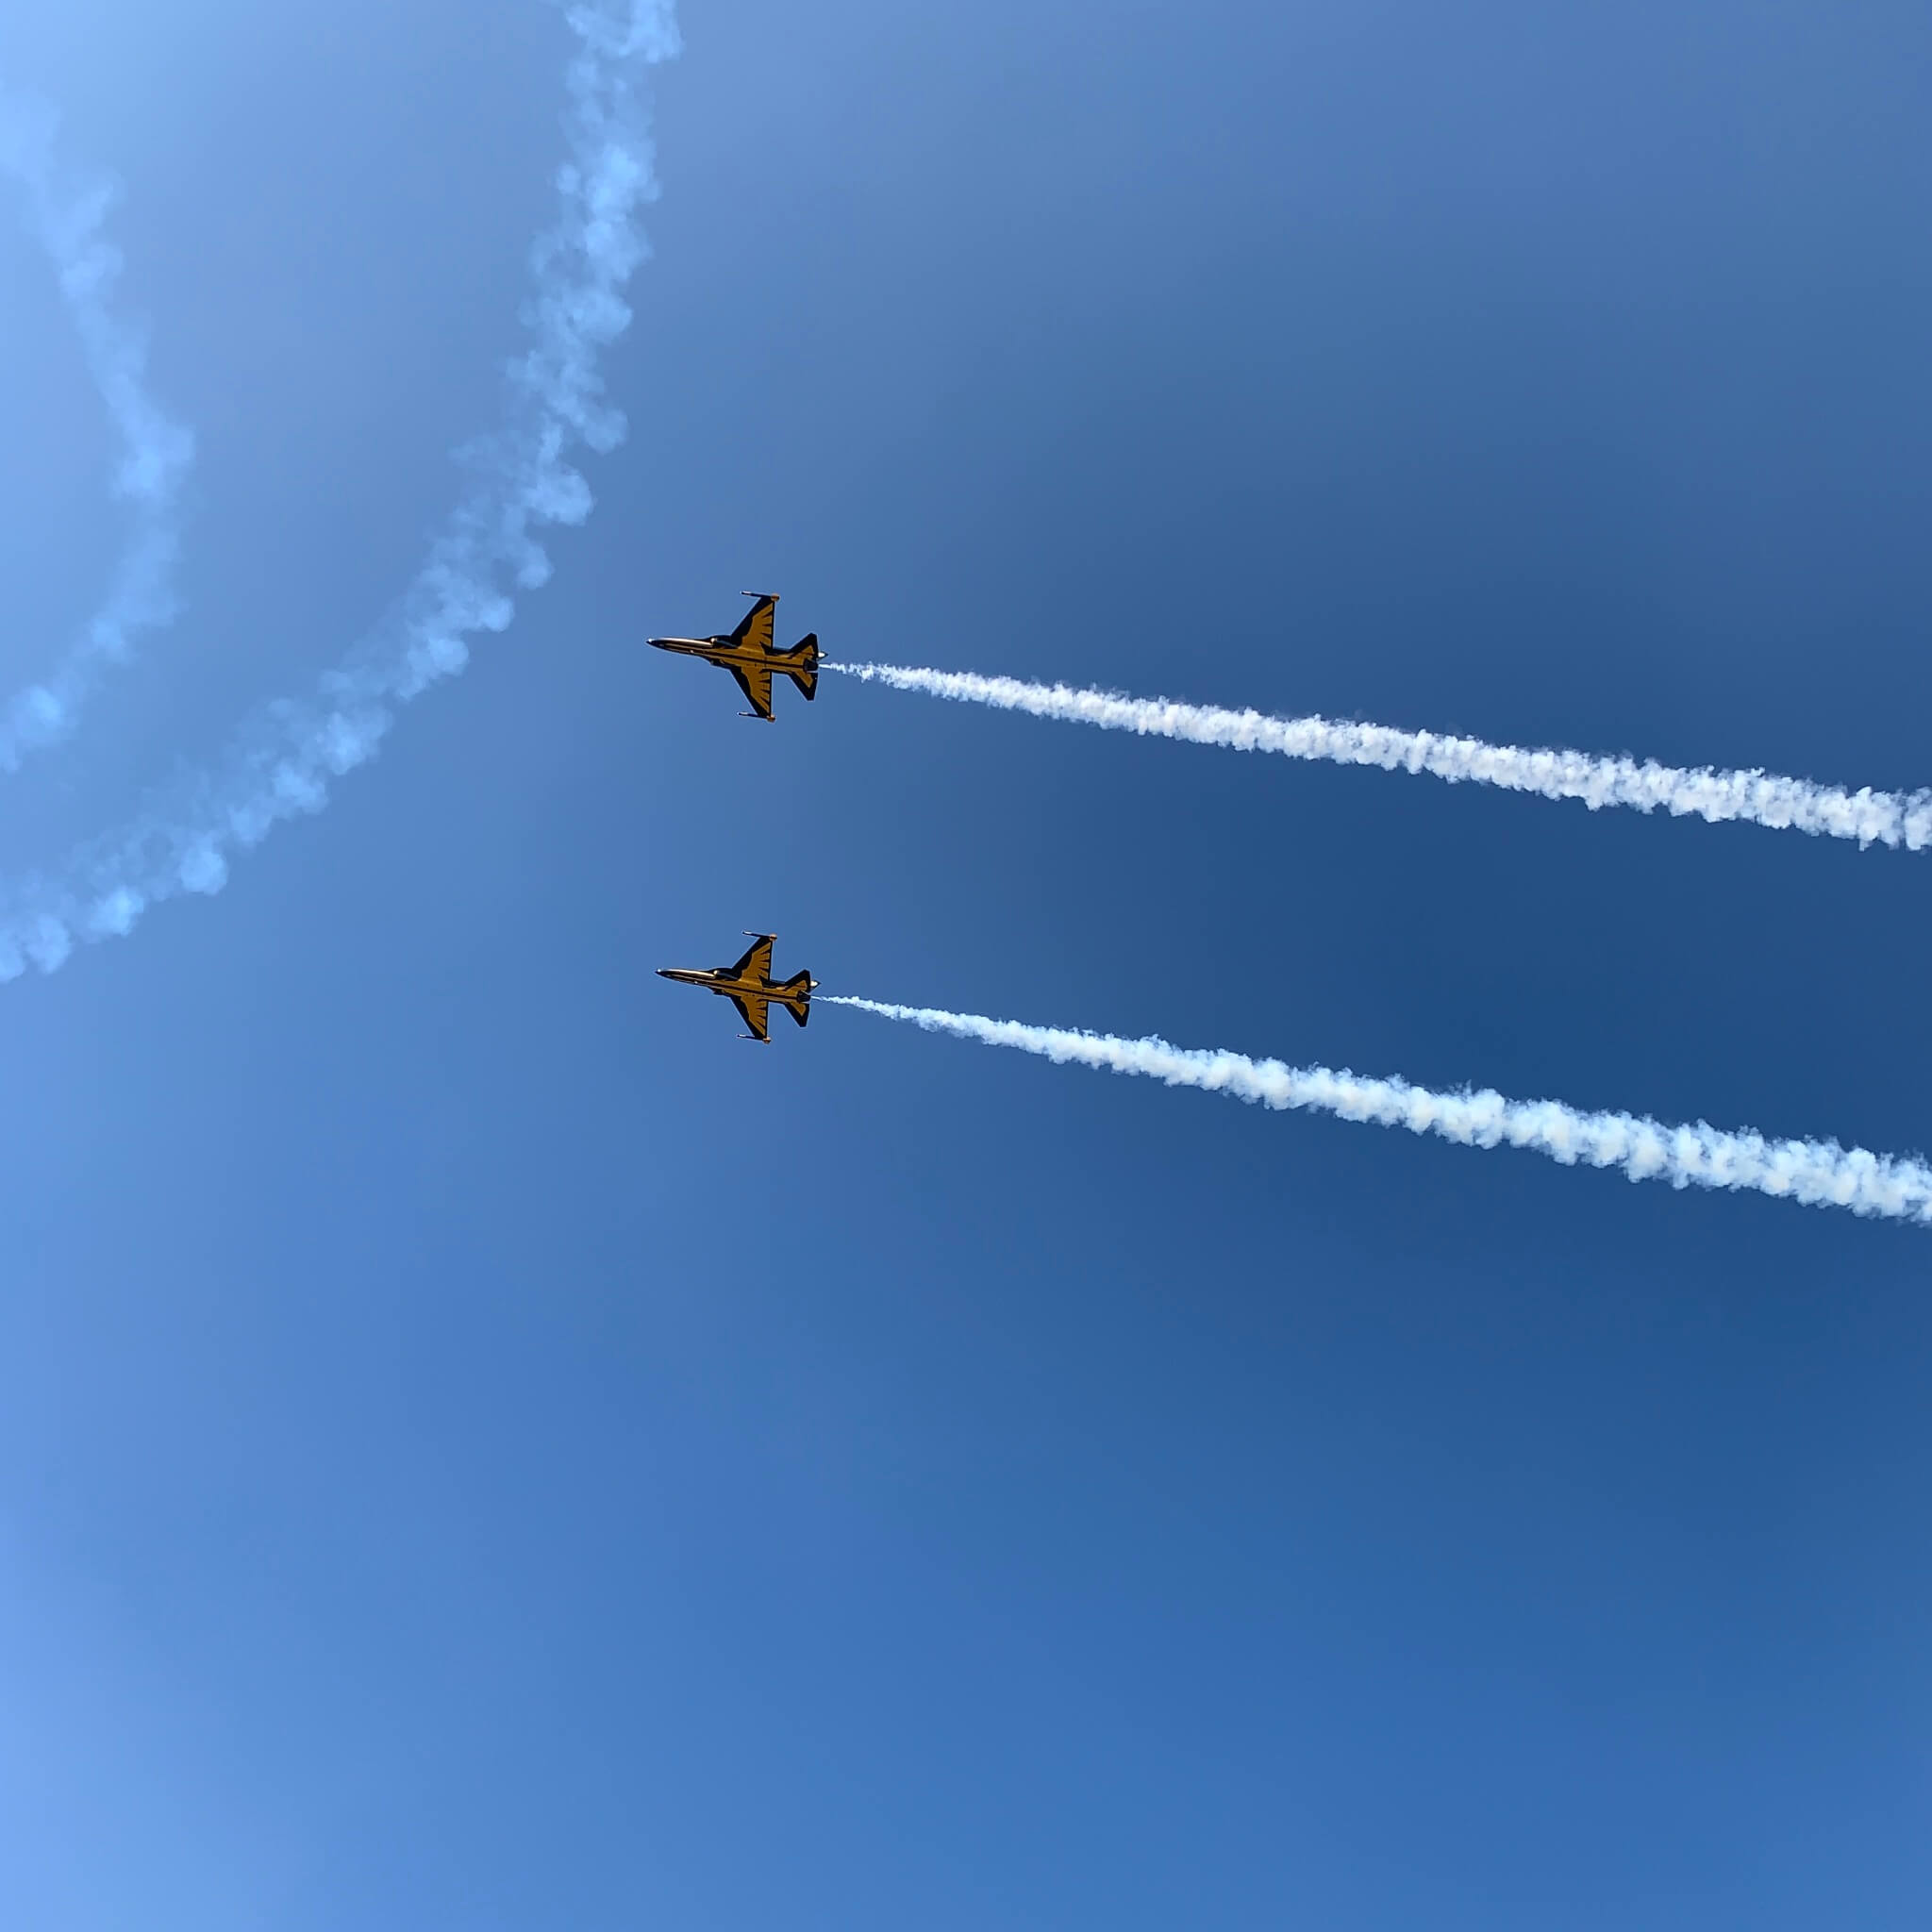 Two fighters in the sky.